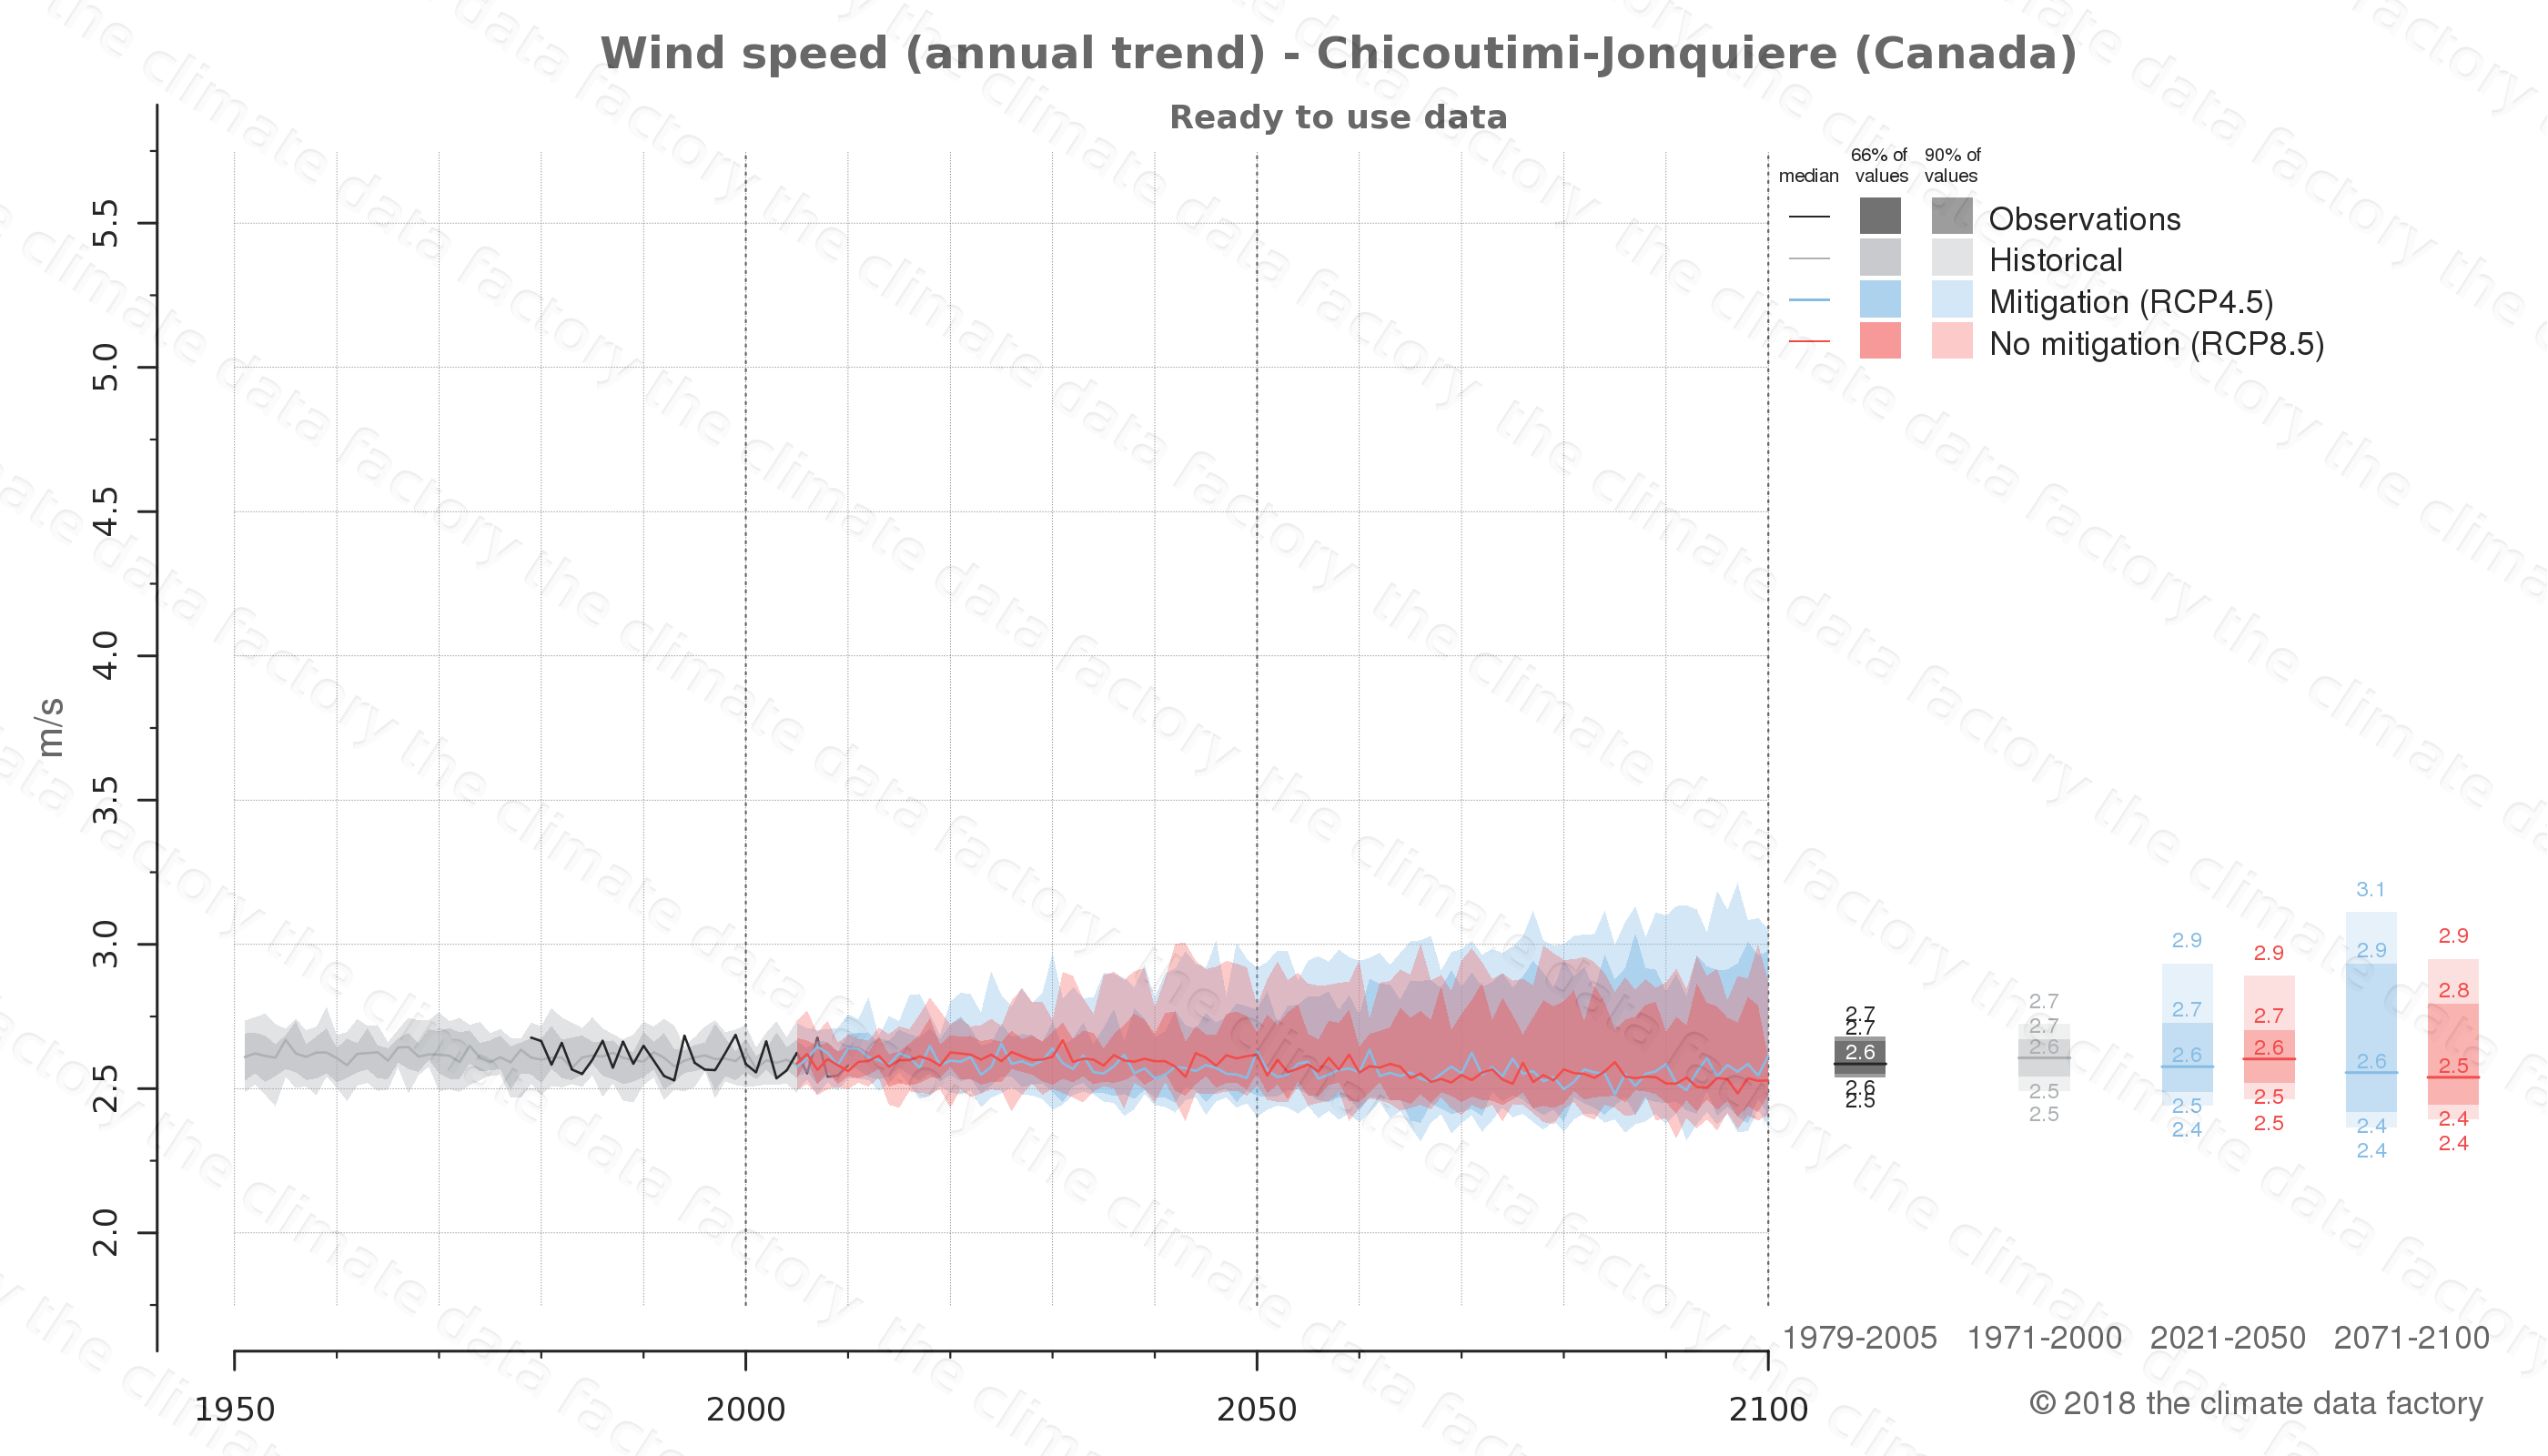 climate change data policy adaptation climate graph city data wind-speed chicoutimi-jonquiere canada